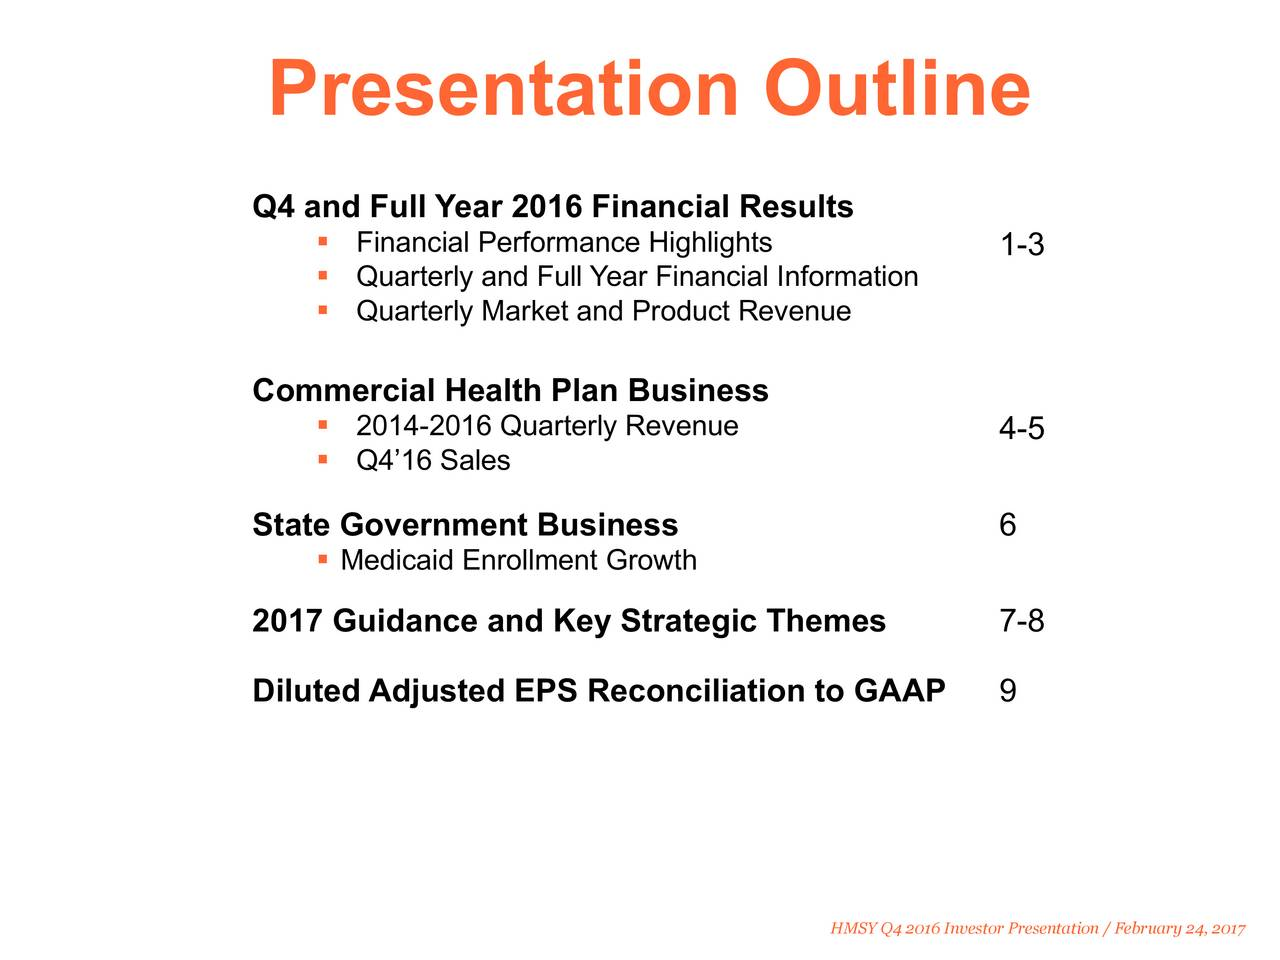 Q4 and Full Year 2016 Financial Results Financial Performance Highlights 1-3 Quarterly and Full Year Financial Information Quarterly Market and Product Revenue Commercial Health Plan Business 2014-2016 Quarterly Revenue 4-5 Q416 Sales State Government Business 6 Medicaid Enrollment Growth 2017 Guidance and Key Strategic Themes 7-8 Diluted Adjusted EPS Reconciliation to GAAP 9 HMSY Q4 2016 Investor Presentation / February 24, 2017